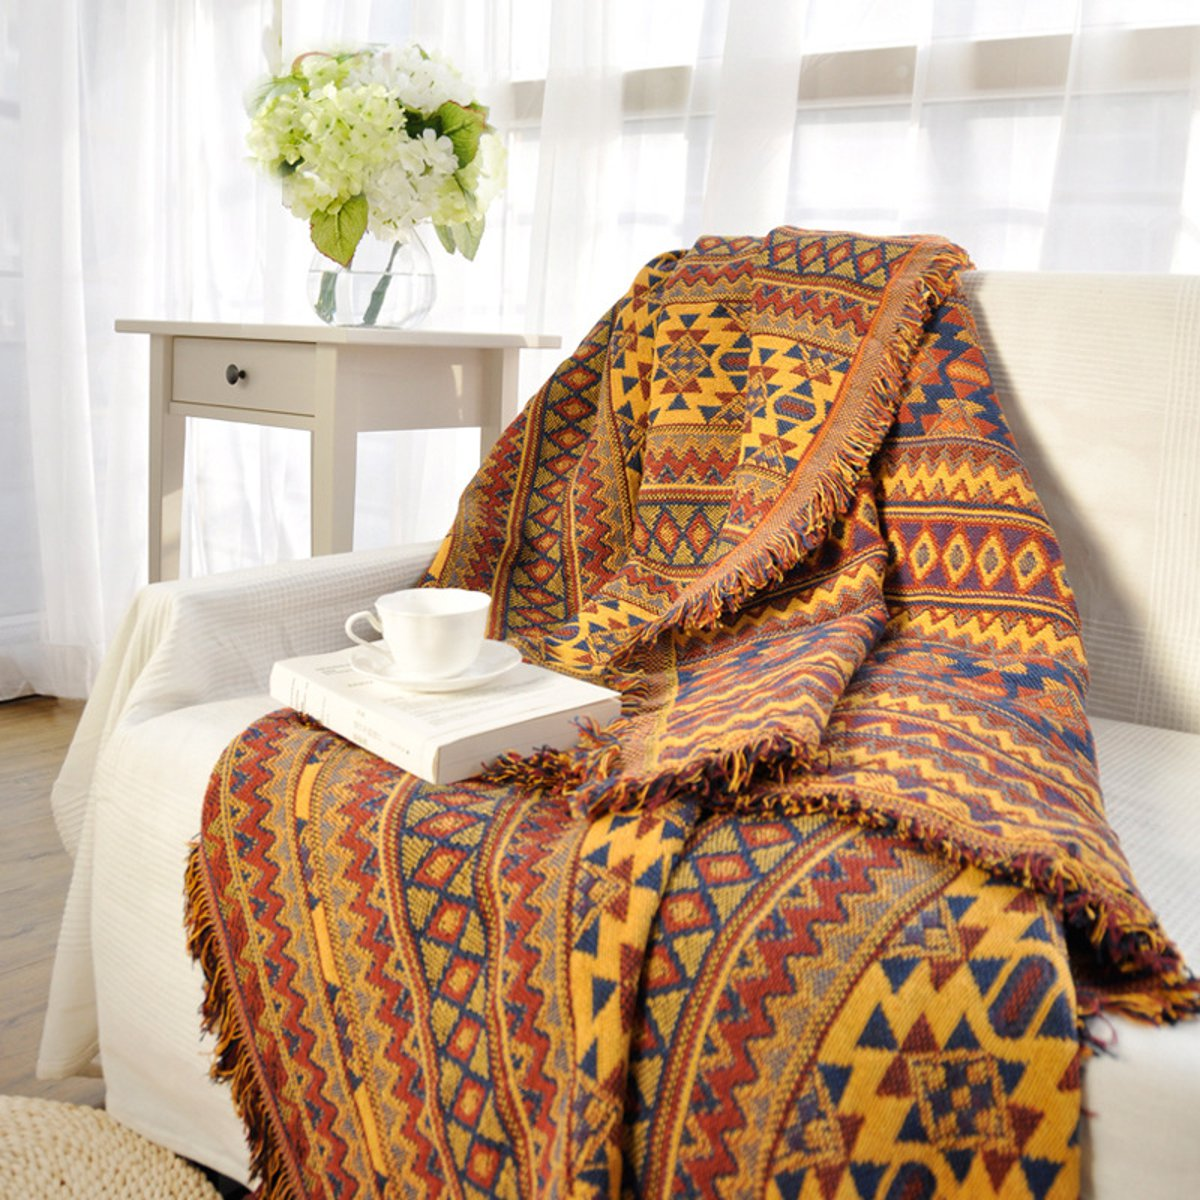 51''x71'' Soft Cotton Blanket Throw Decorated Bohemian Ethnic Fringed Sofa Blanket Armchair Cover Tatami Bedroom Home Decor